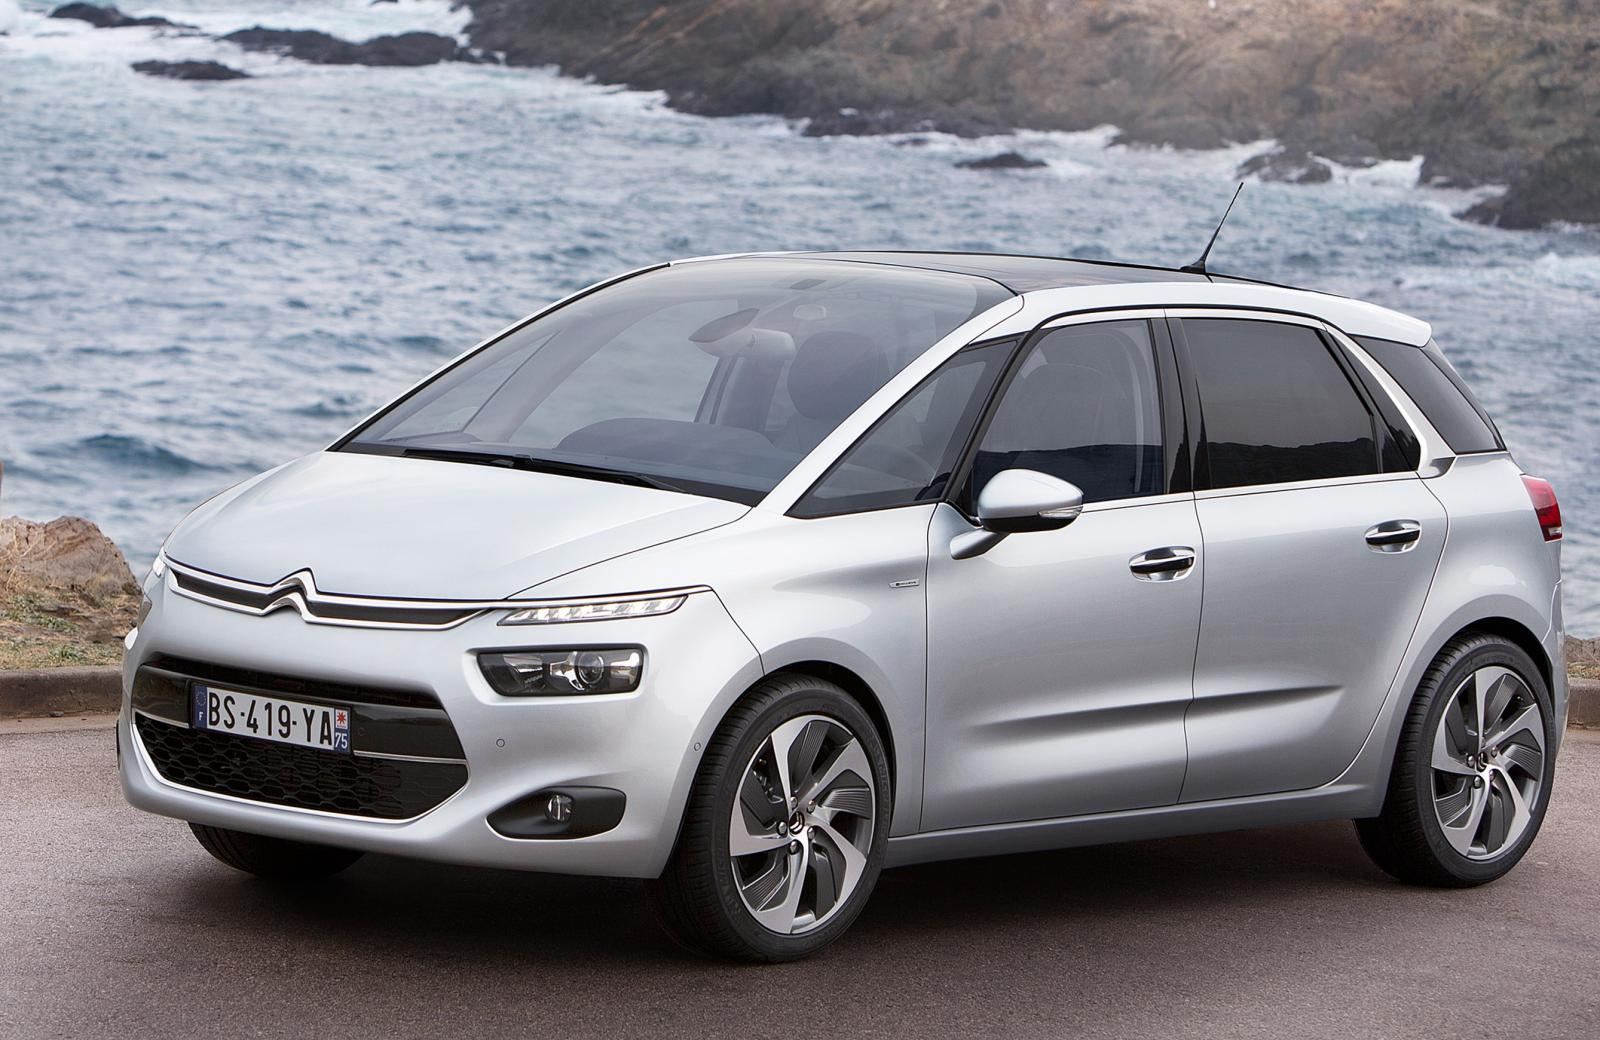 citroen c4 picasso ii mt 92 hp car technical data. Black Bedroom Furniture Sets. Home Design Ideas